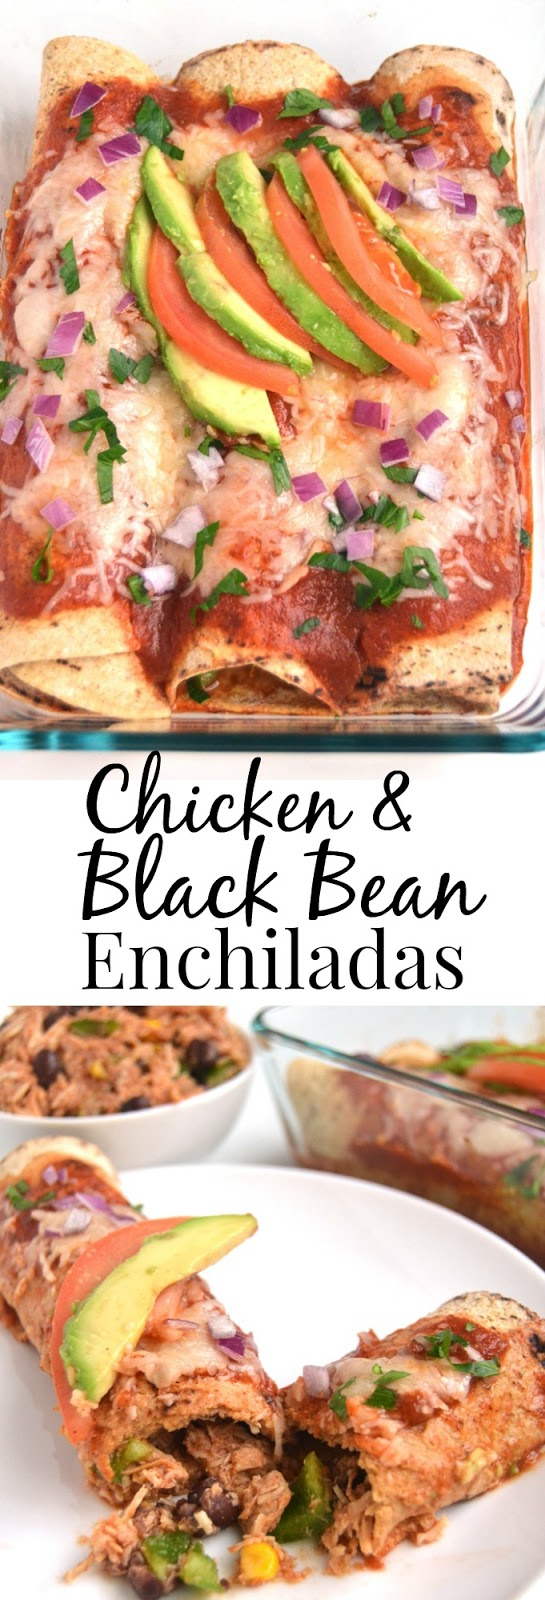 Chicken and Black Bean Enchiladas feature shredded, slow-cooker chicken, black beans, corn and bell peppers topped with a fresh, flavorful tomato sauce, melted cheese and fresh tomatoes and avocado for a meal everyone will love! www.nutritionistreviews.com